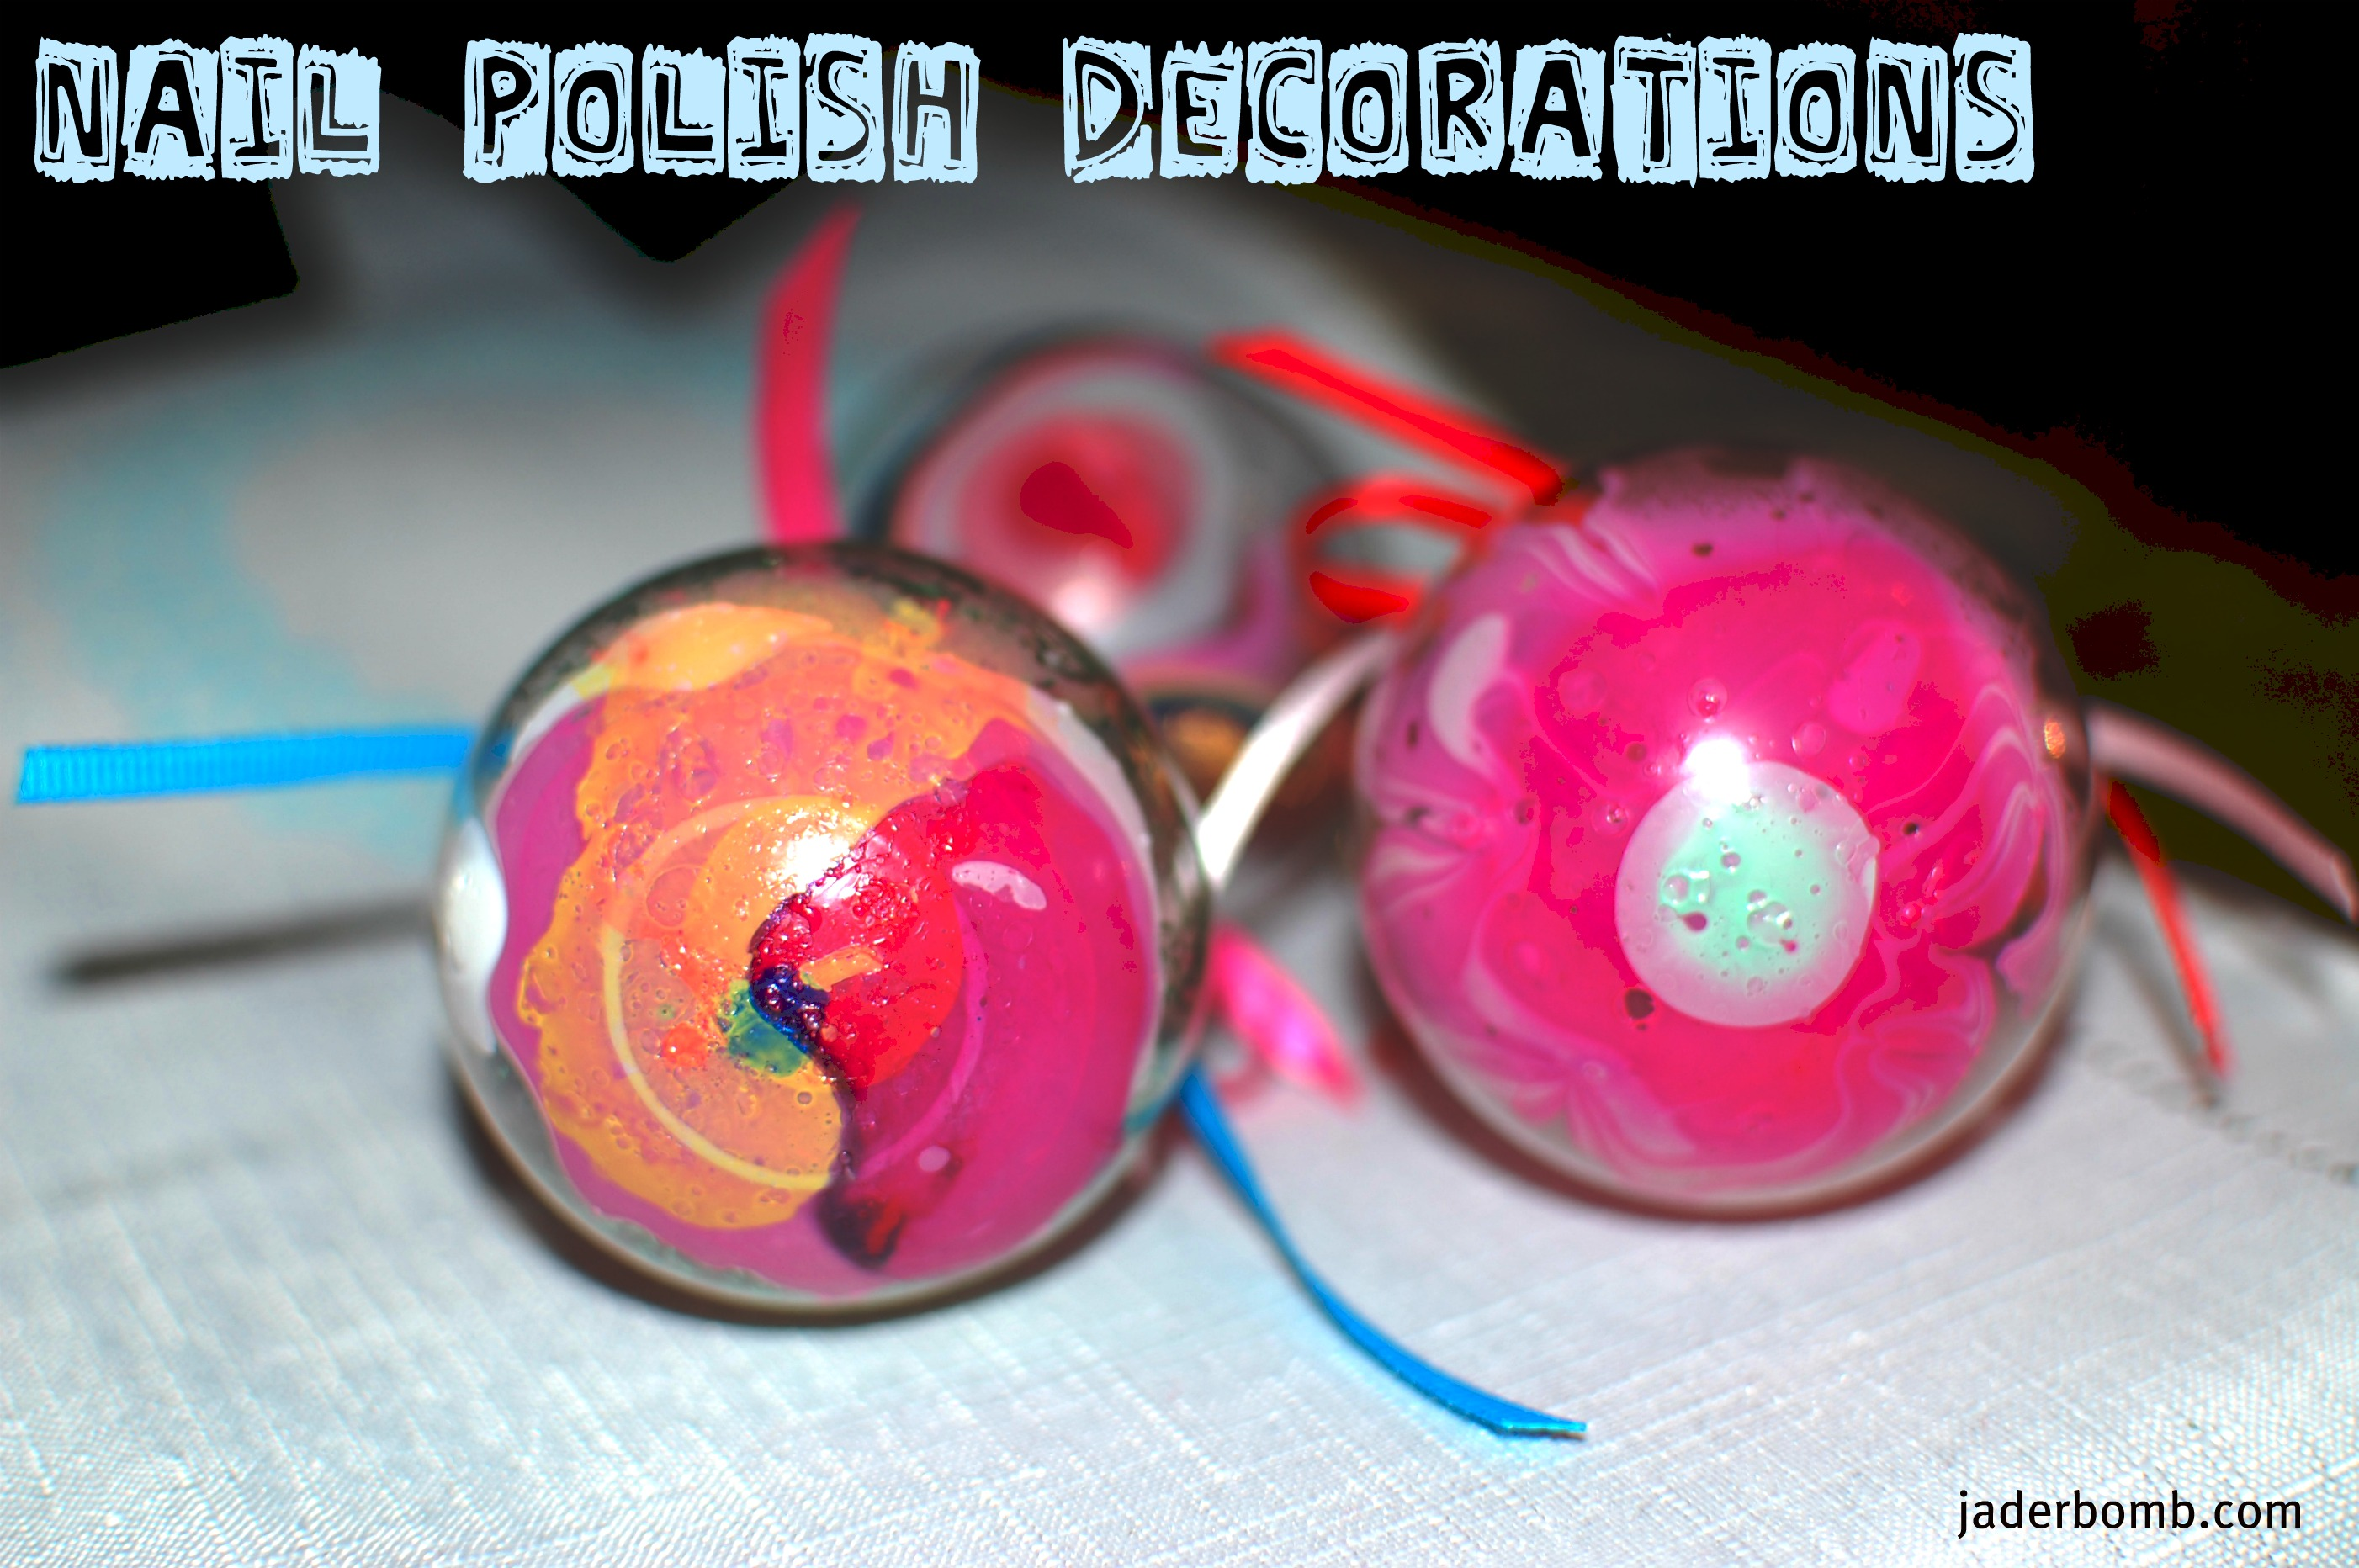 Polish glass ornaments - You Have To Be In Love As Much As I Am In Love With These Babies You Better Get Dozens Of Glass Ornaments Because This Craft Is Absolutely Addicting